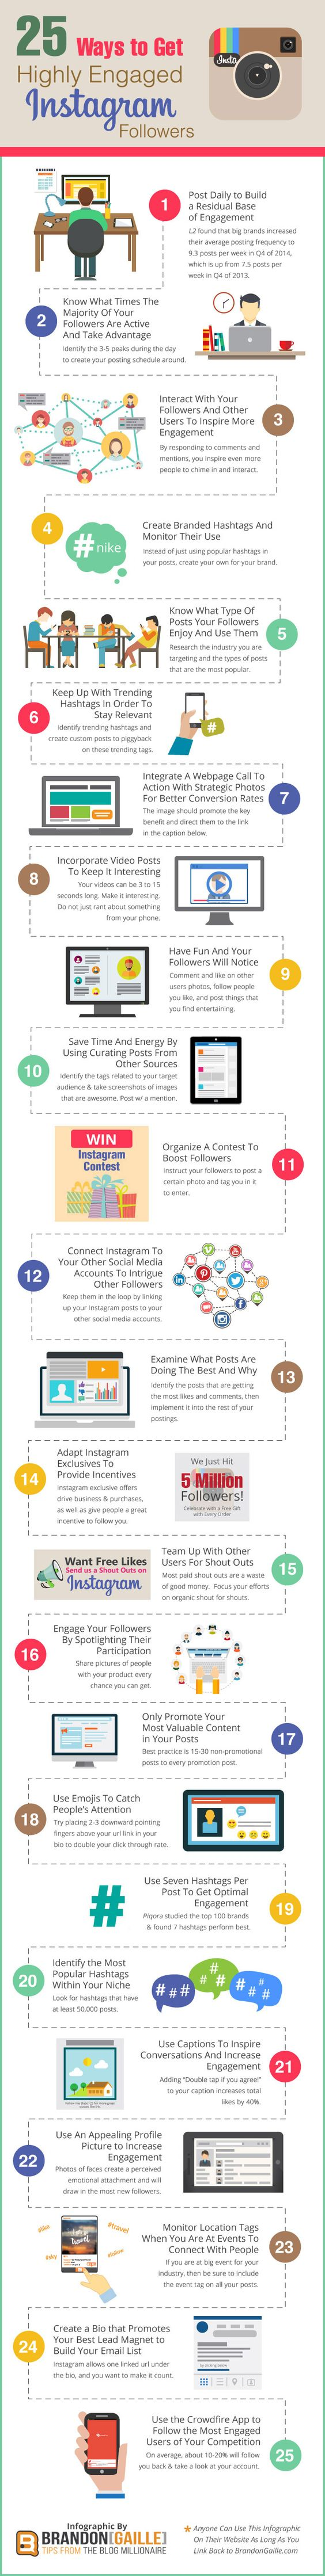 25 Ways to Get Highly Engaged Instagram Followers